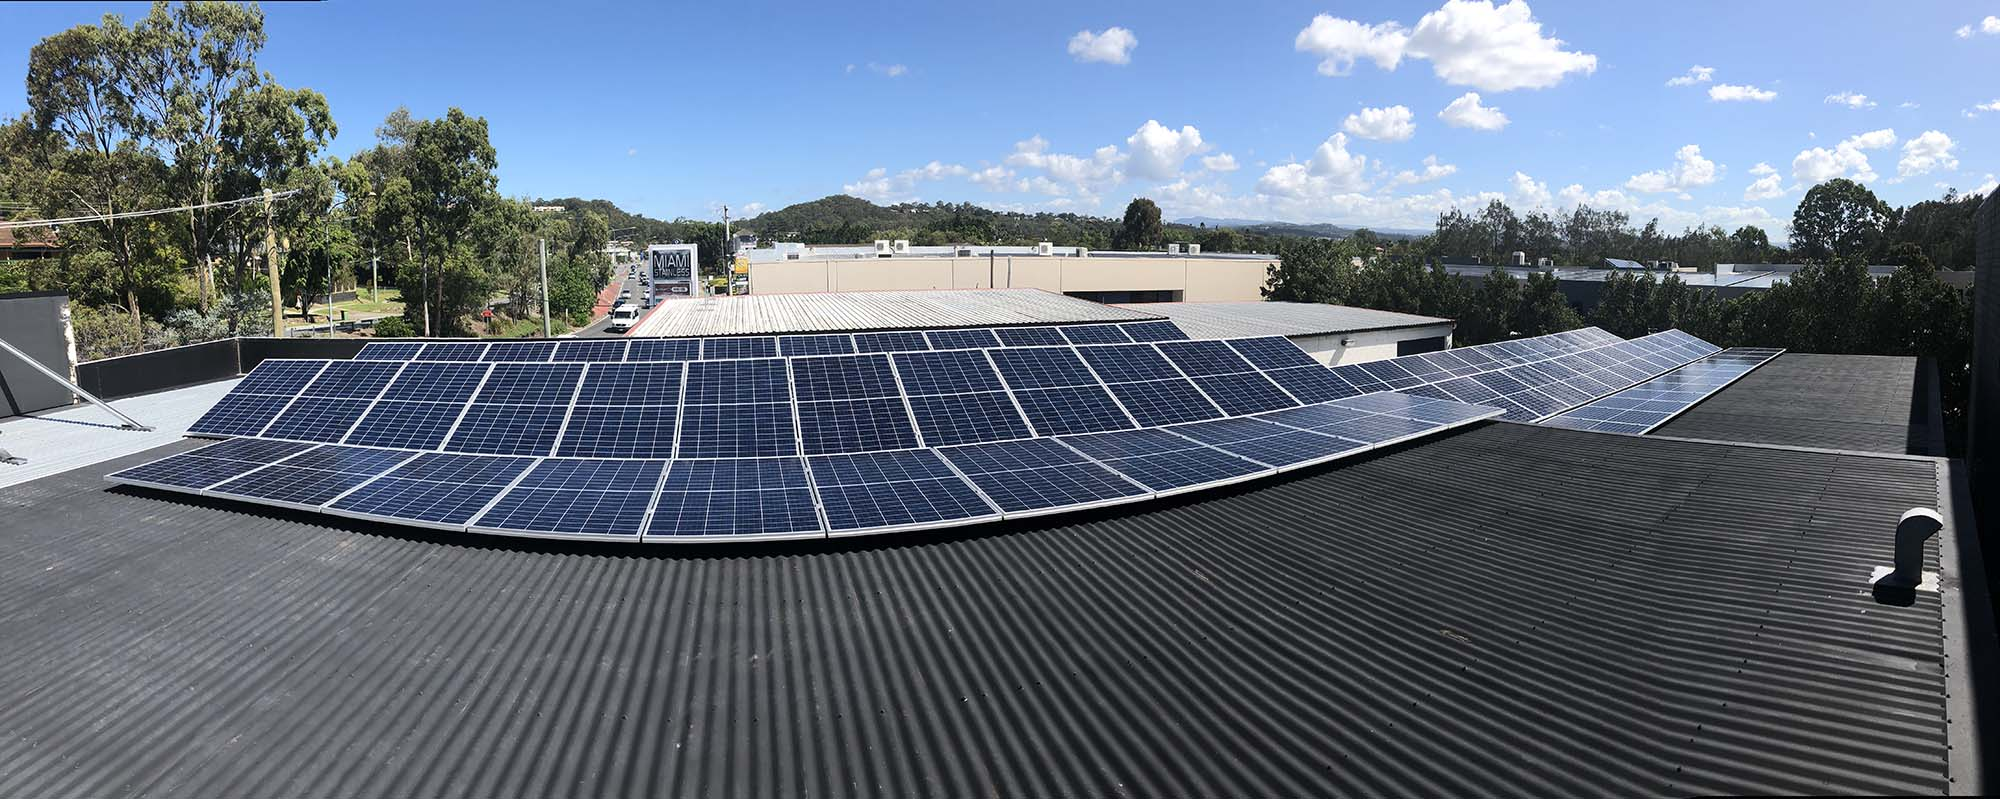 Commercial Solar panels installations Tweed Heads, Kingscliff NSW